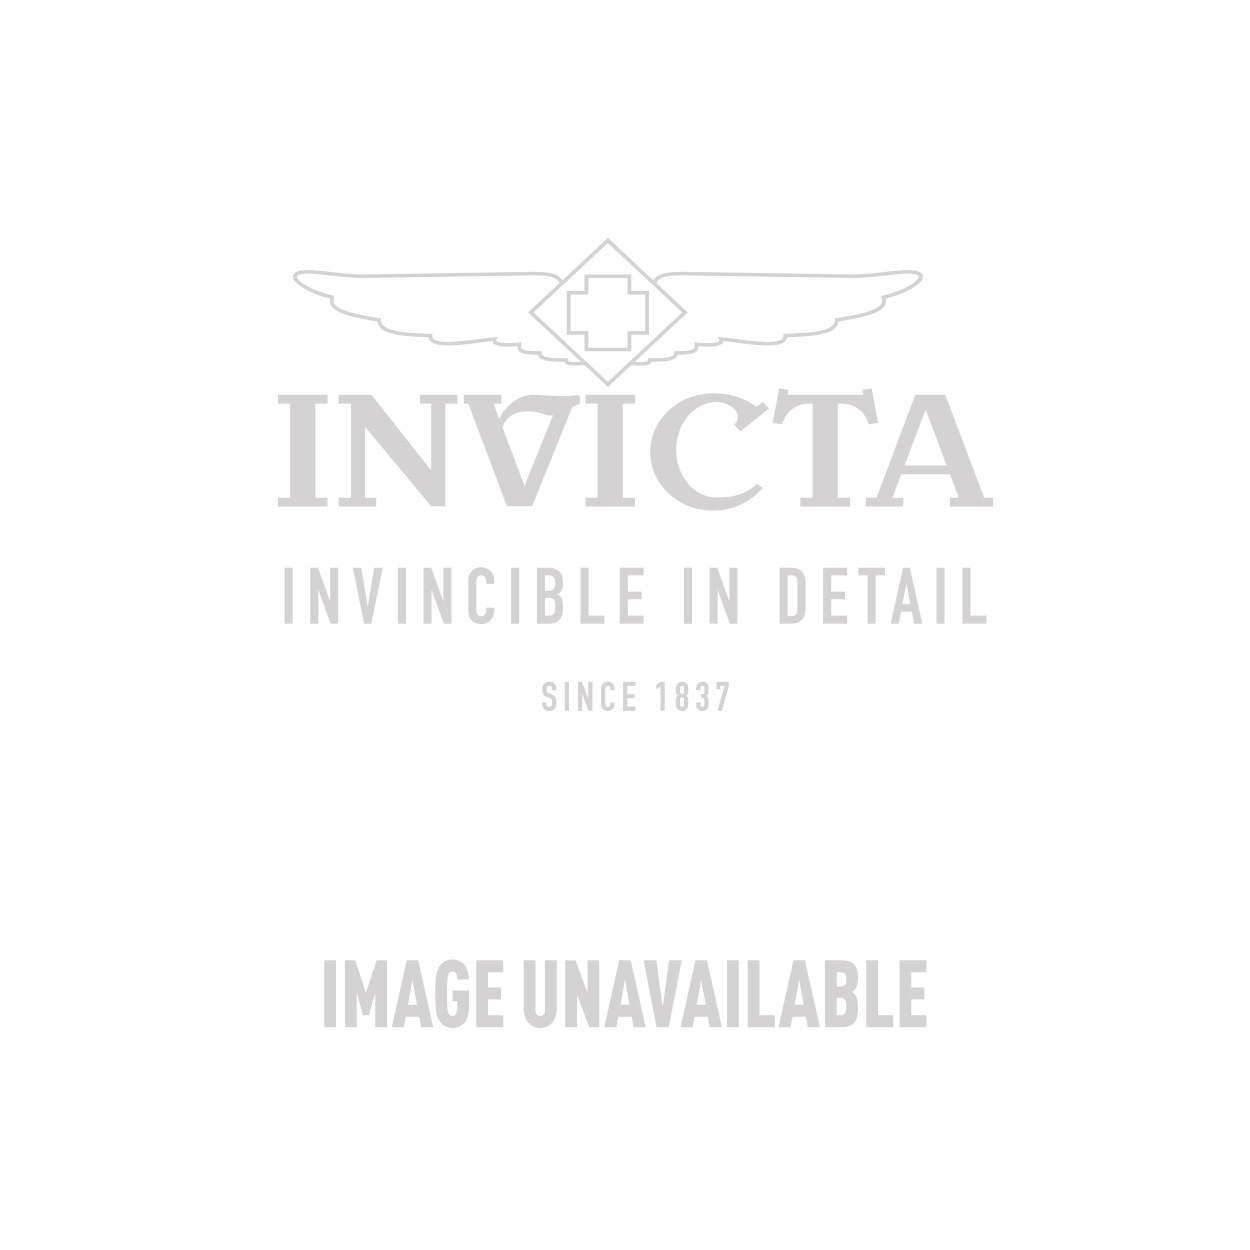 Invicta Bolt Swiss Made Quartz Watch - Gunmetal, Stainless Steel case Stainless Steel band - Model 11602